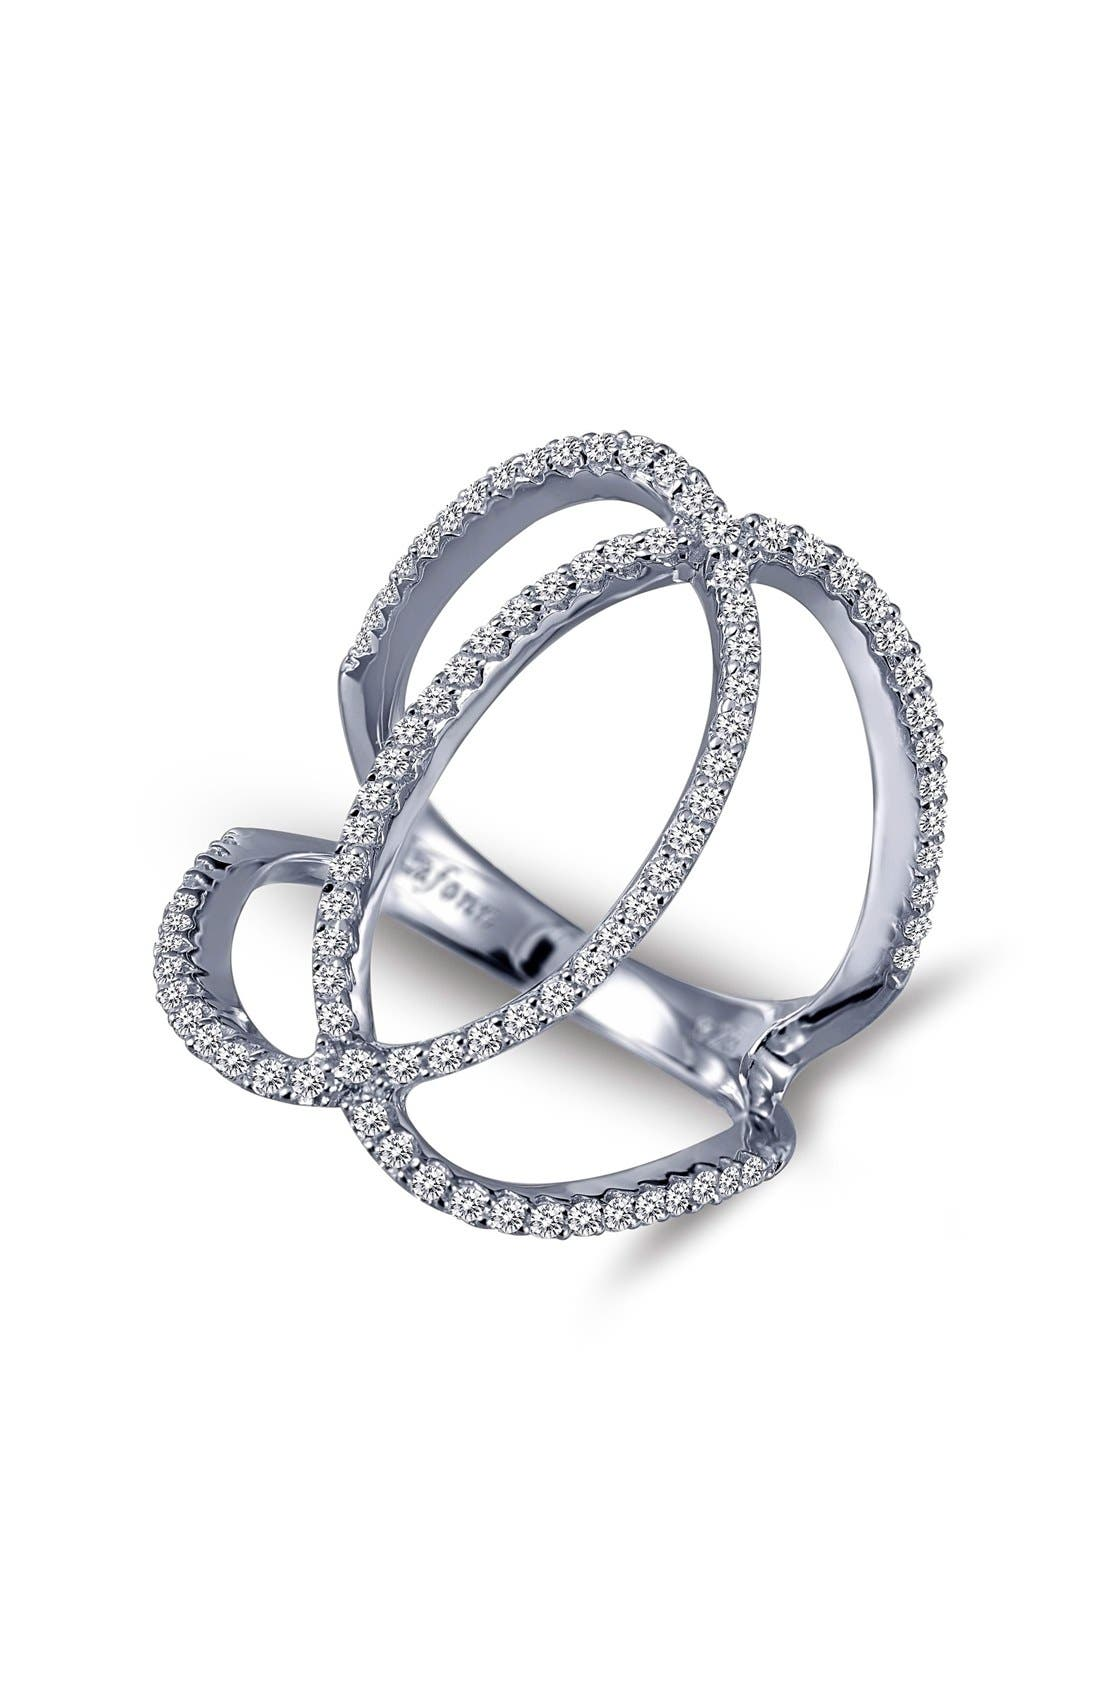 Alternate Image 1 Selected - Lafonn 'Lassaire' Openwork Ring